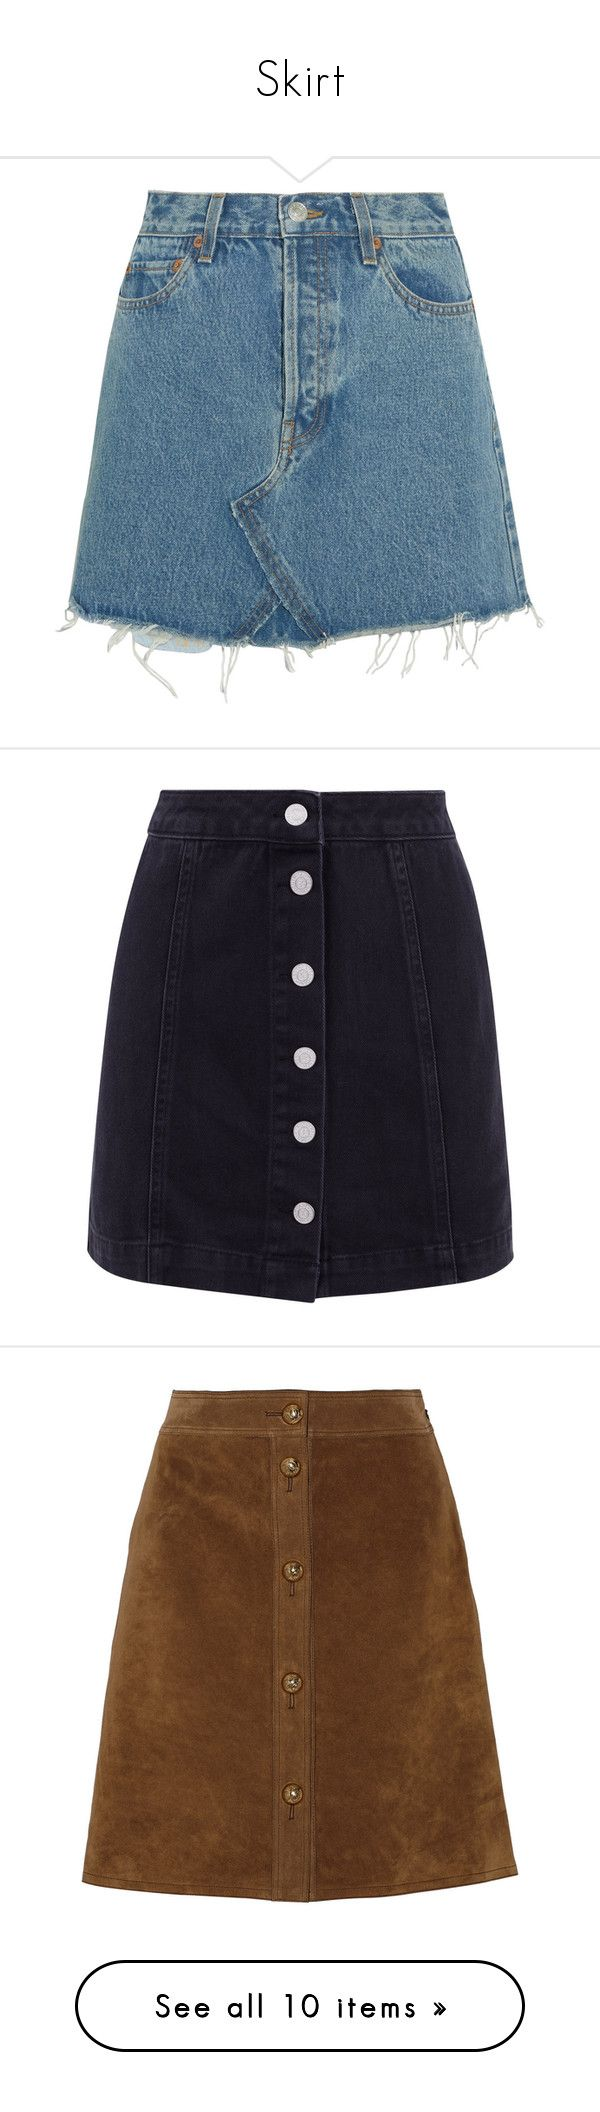 """Skirt"" by eleonore-plot on Polyvore featuring skirts, mini skirts, bottoms, saias, blue, vintage skirts, high waisted mini skirt, distressed denim skirt, high rise skirts et short mini skirts"